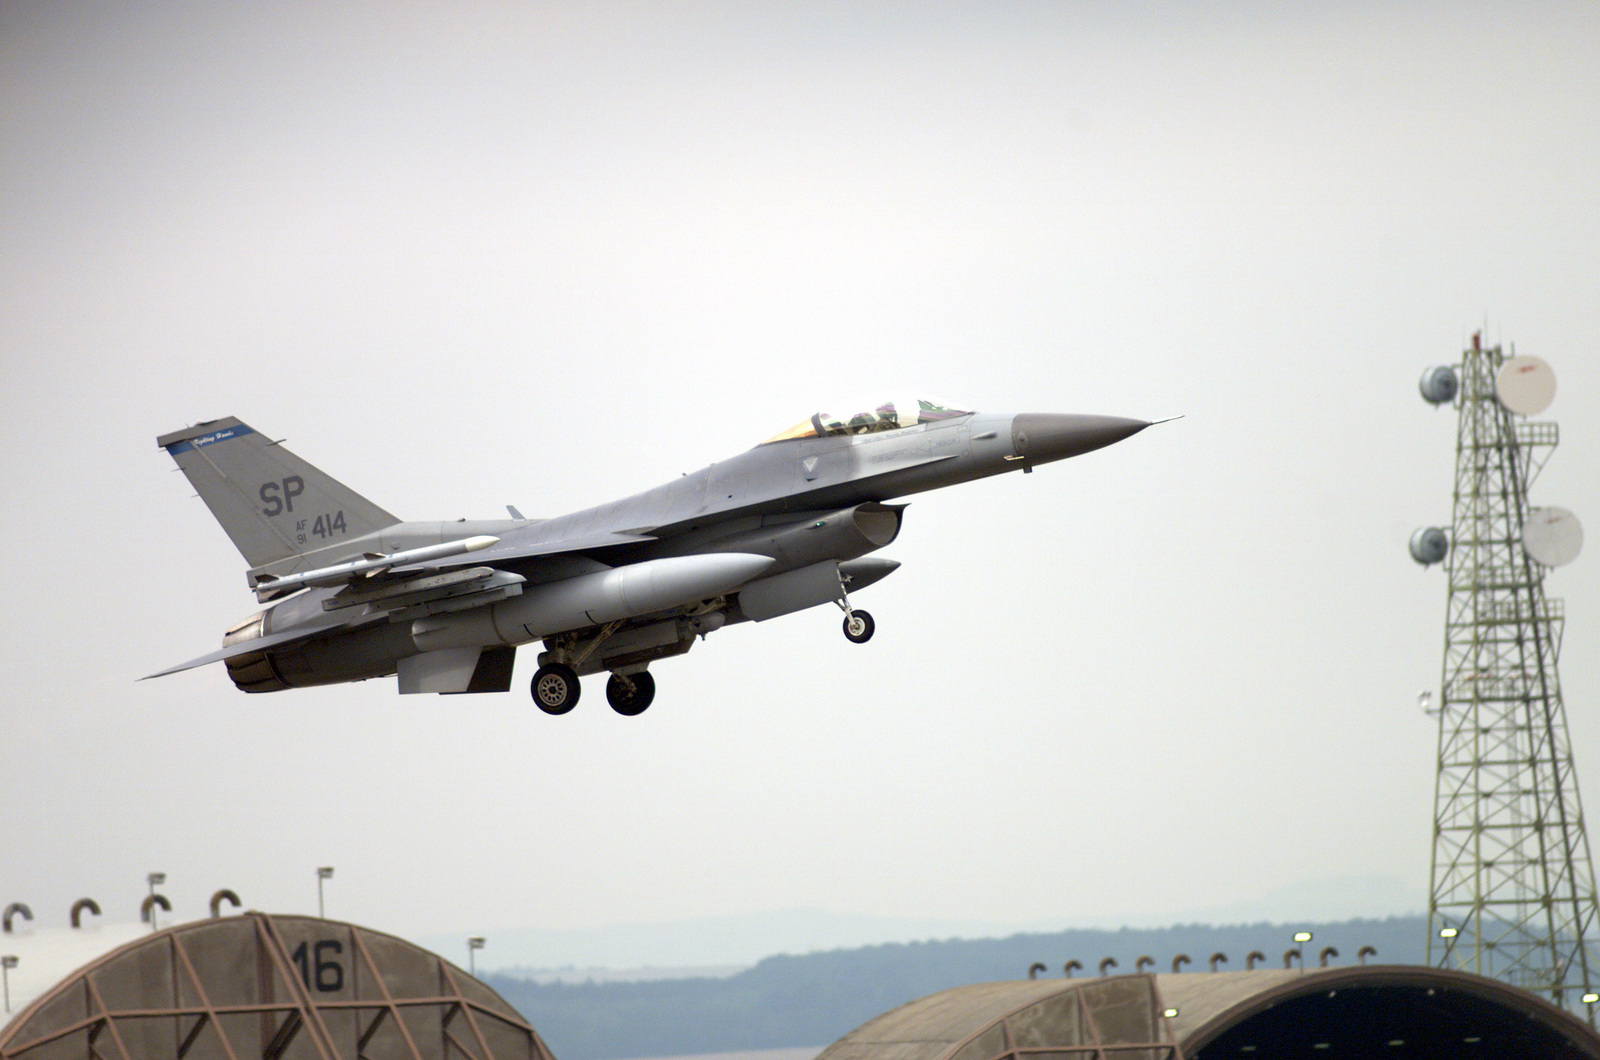 A US Air Force (USAF) F-16 Fighting Falcon from the 23rd Fighter Squadron (FS) takes off from Spangdahlem Air Base (AB), Germany on a routine training mission